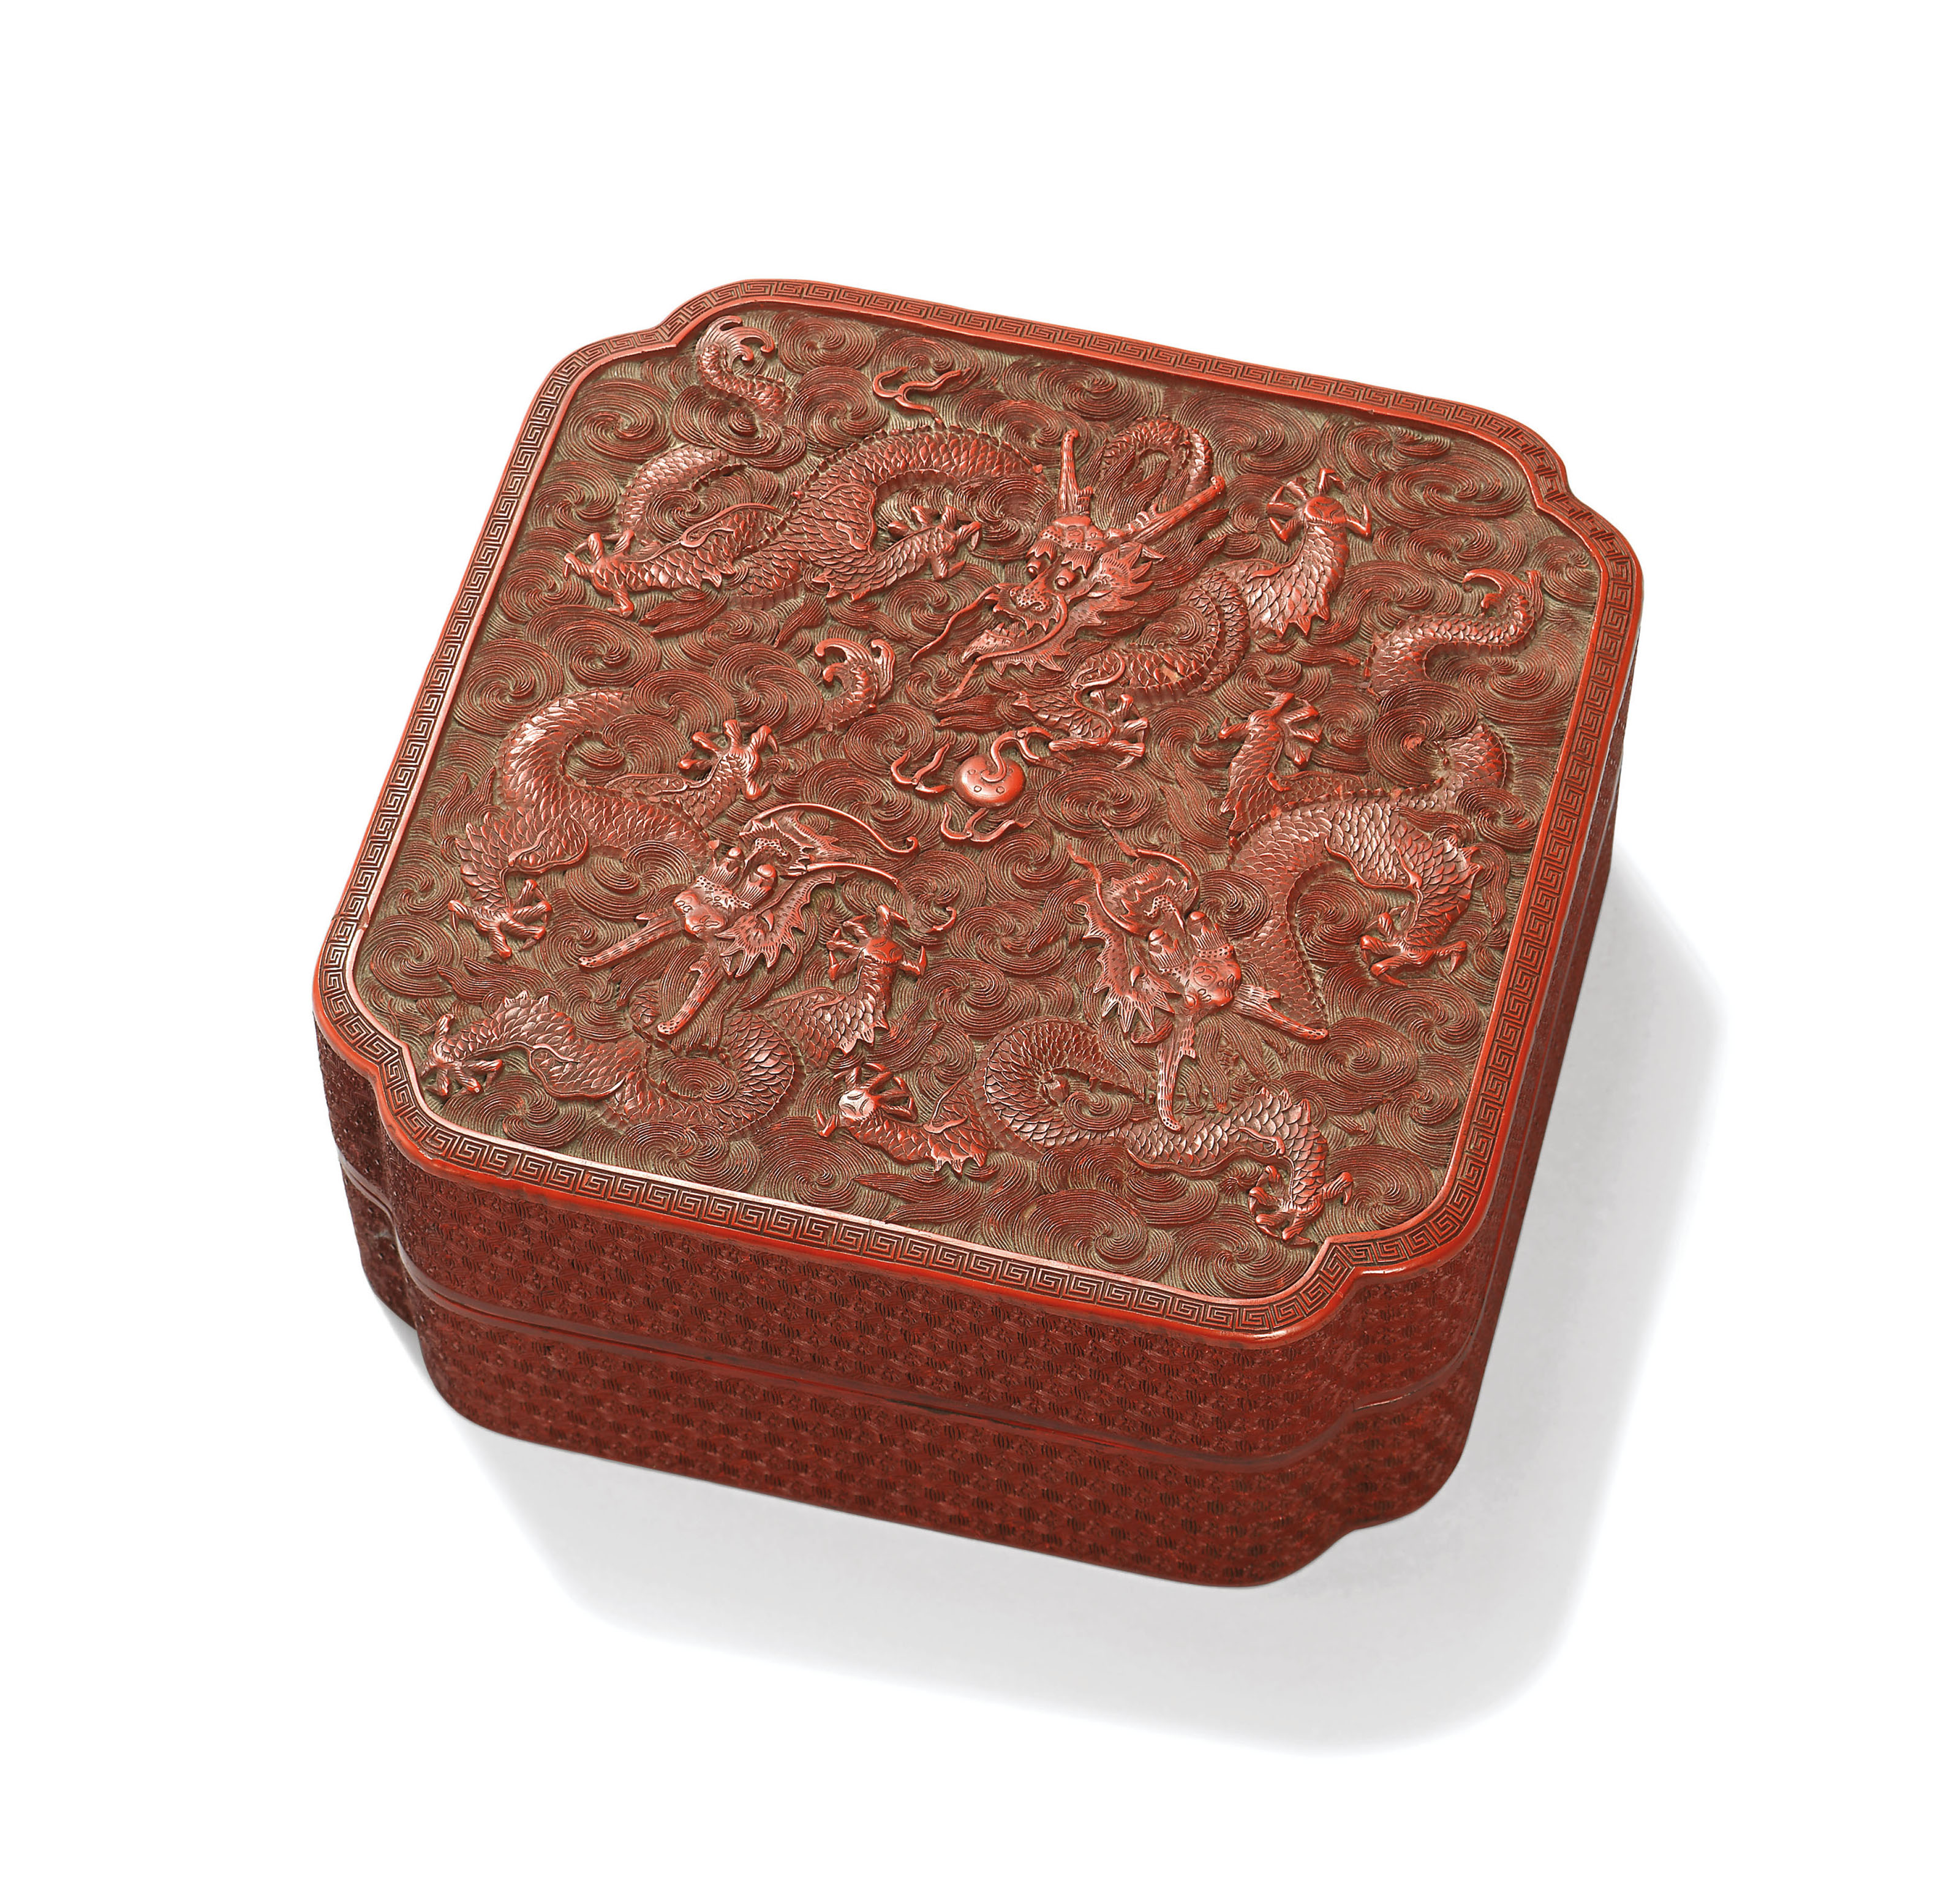 A CARVED CINNABAR LACQUER 'DRAGON' BOX AND COVER